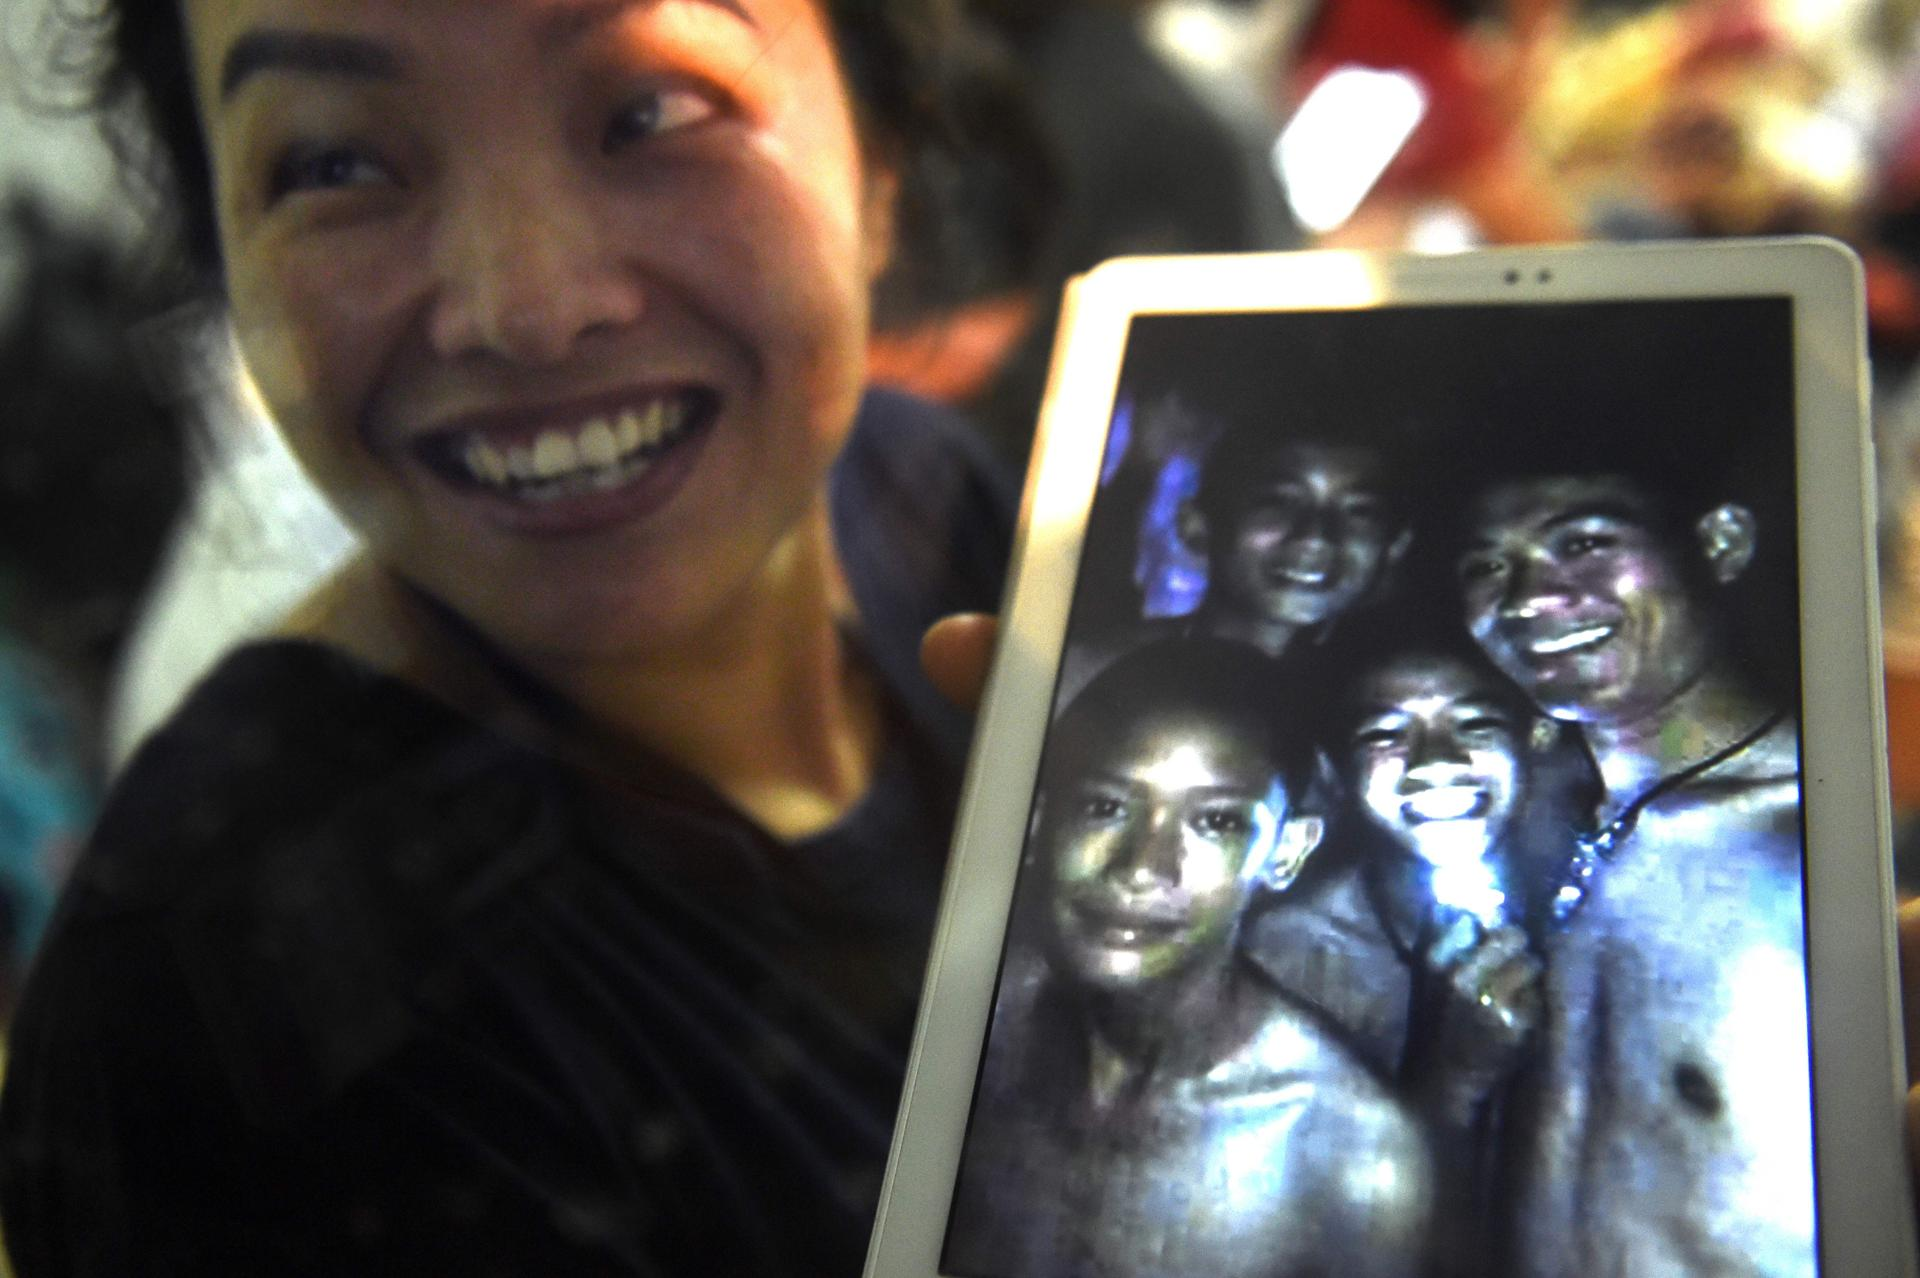 A happy family member showed photographers the latest picture of the missing boys taken by rescue divers.